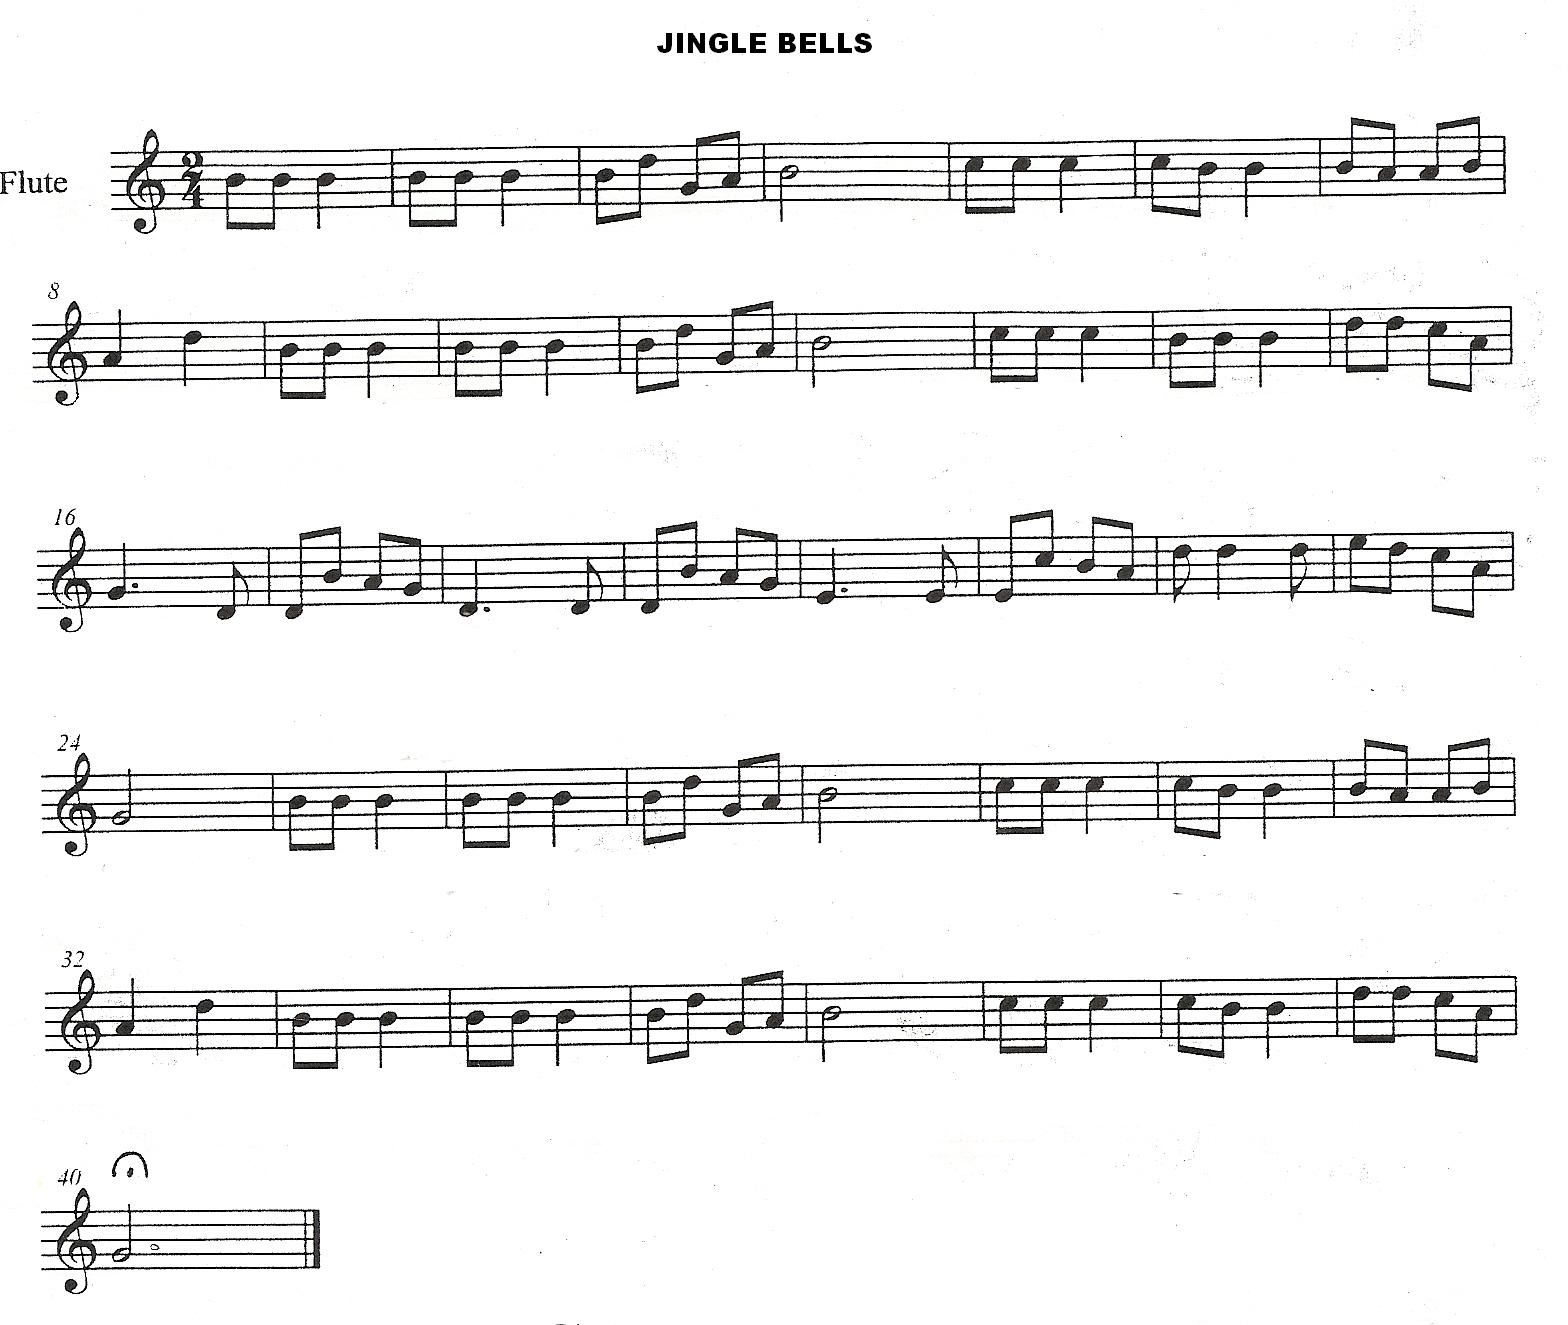 letra de canciones jingle bells: